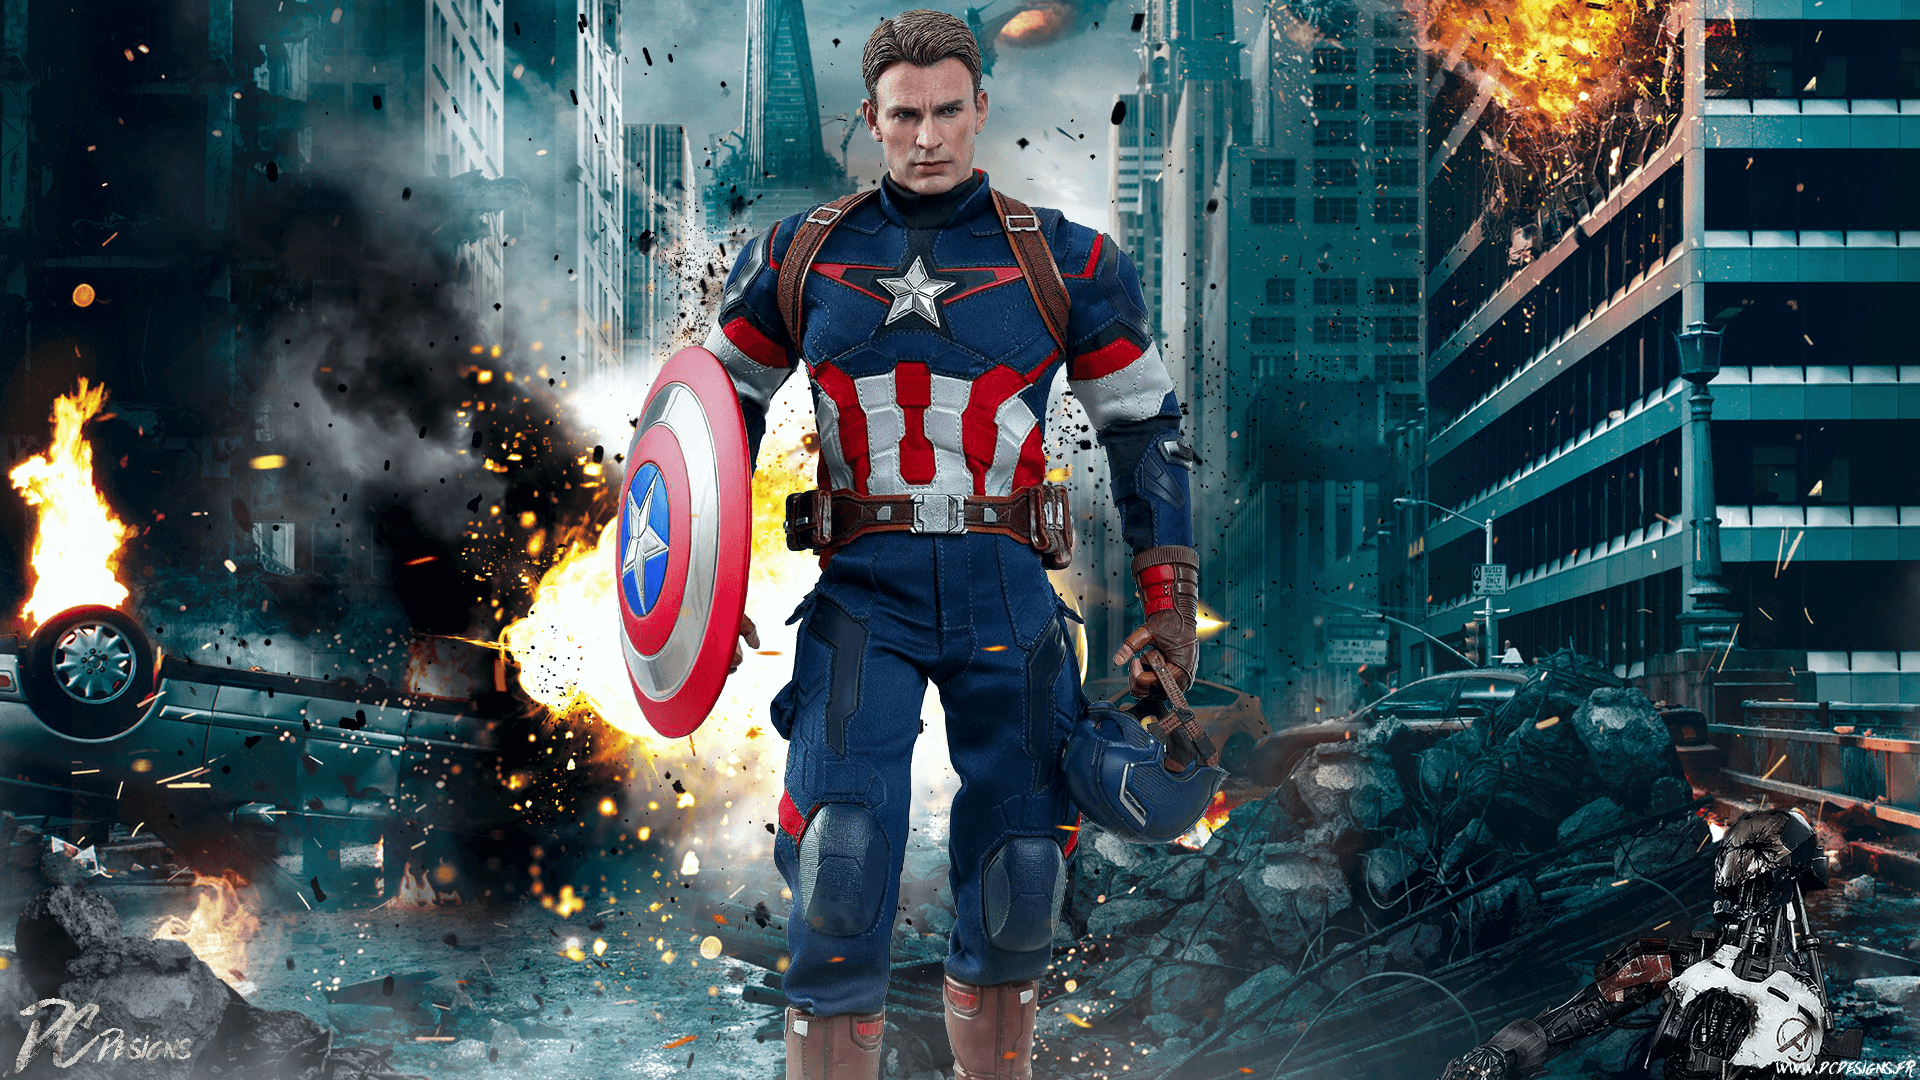 Chris Evans Captain America Wallpapers Top Free Chris Evans